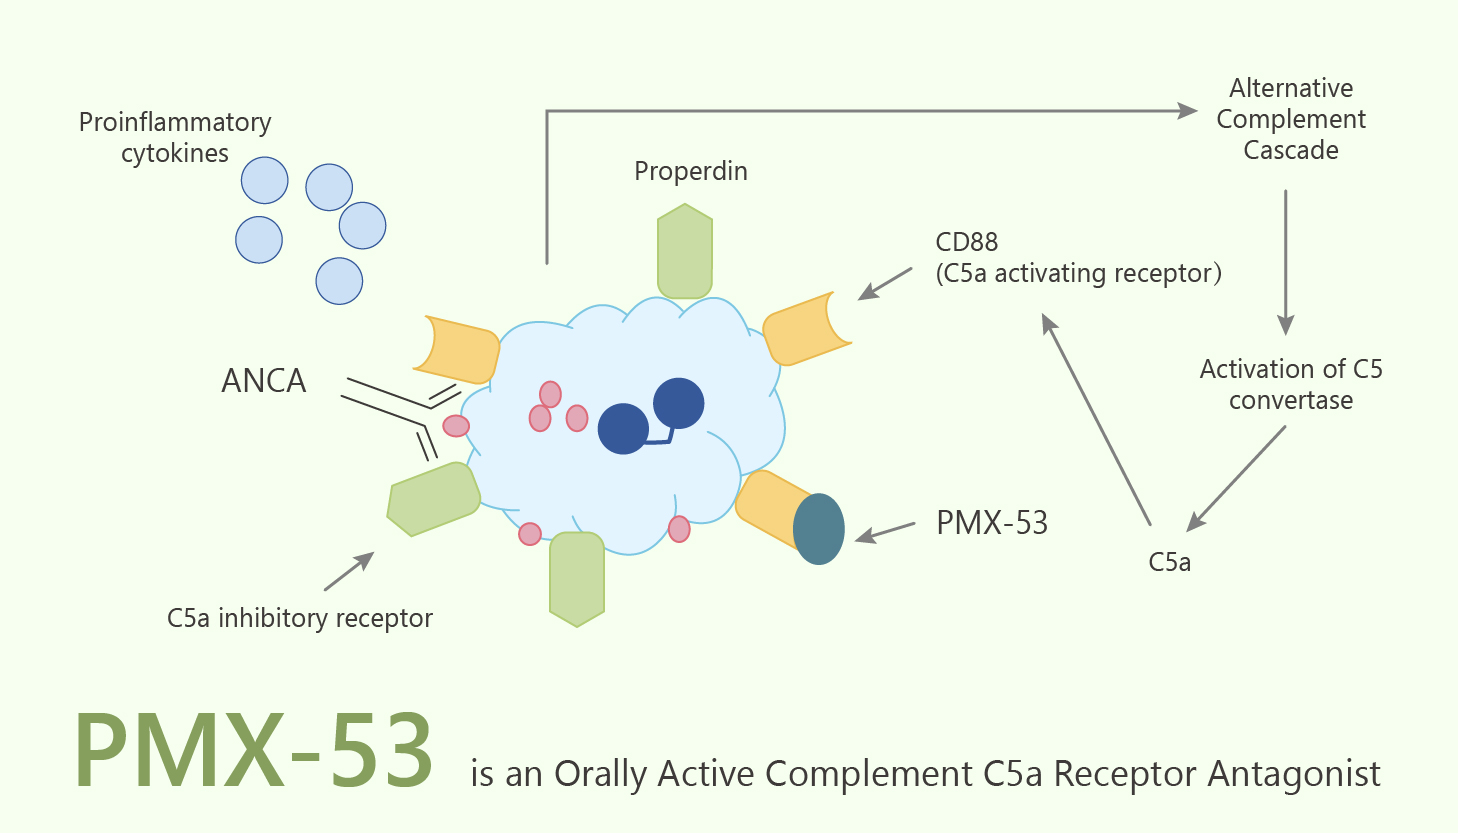 PMX 53 is an Orally Active Complement C5a Receptor Antagonist 2020 06 09 - PMX-53 is an Orally Active Complement C5a Receptor Antagonist